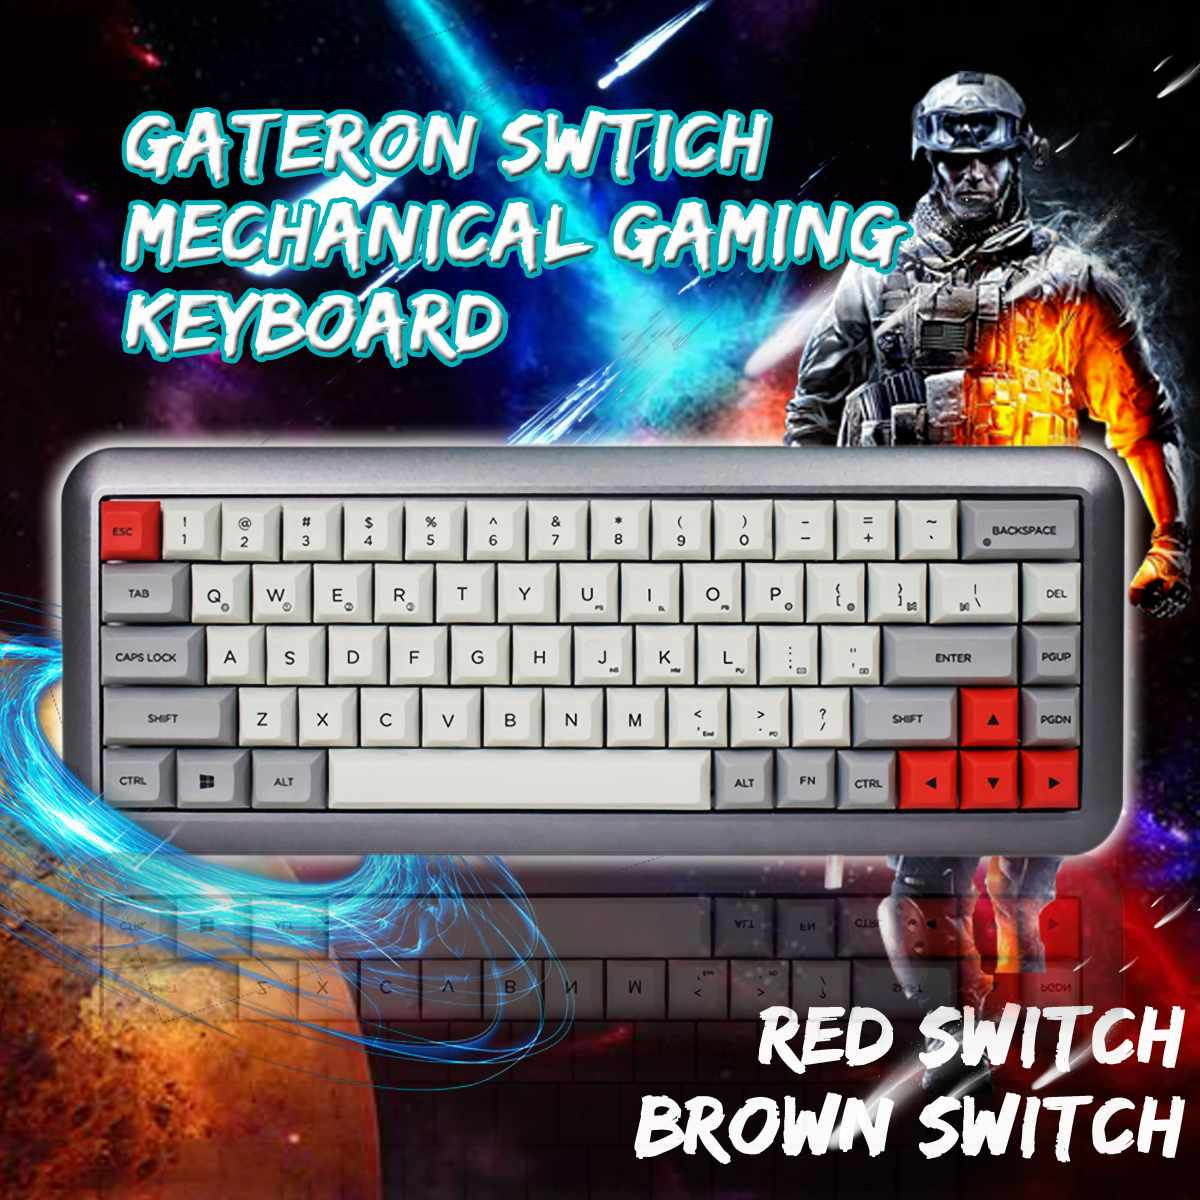 Gateron Switch DSA Profile Dye-sub PBT <font><b>Keycaps</b></font> GK68 <font><b>68</b></font> Key Hot-swappable Type-C Wired Mechanical Gaming Keyboard for-Mac OS Wins image